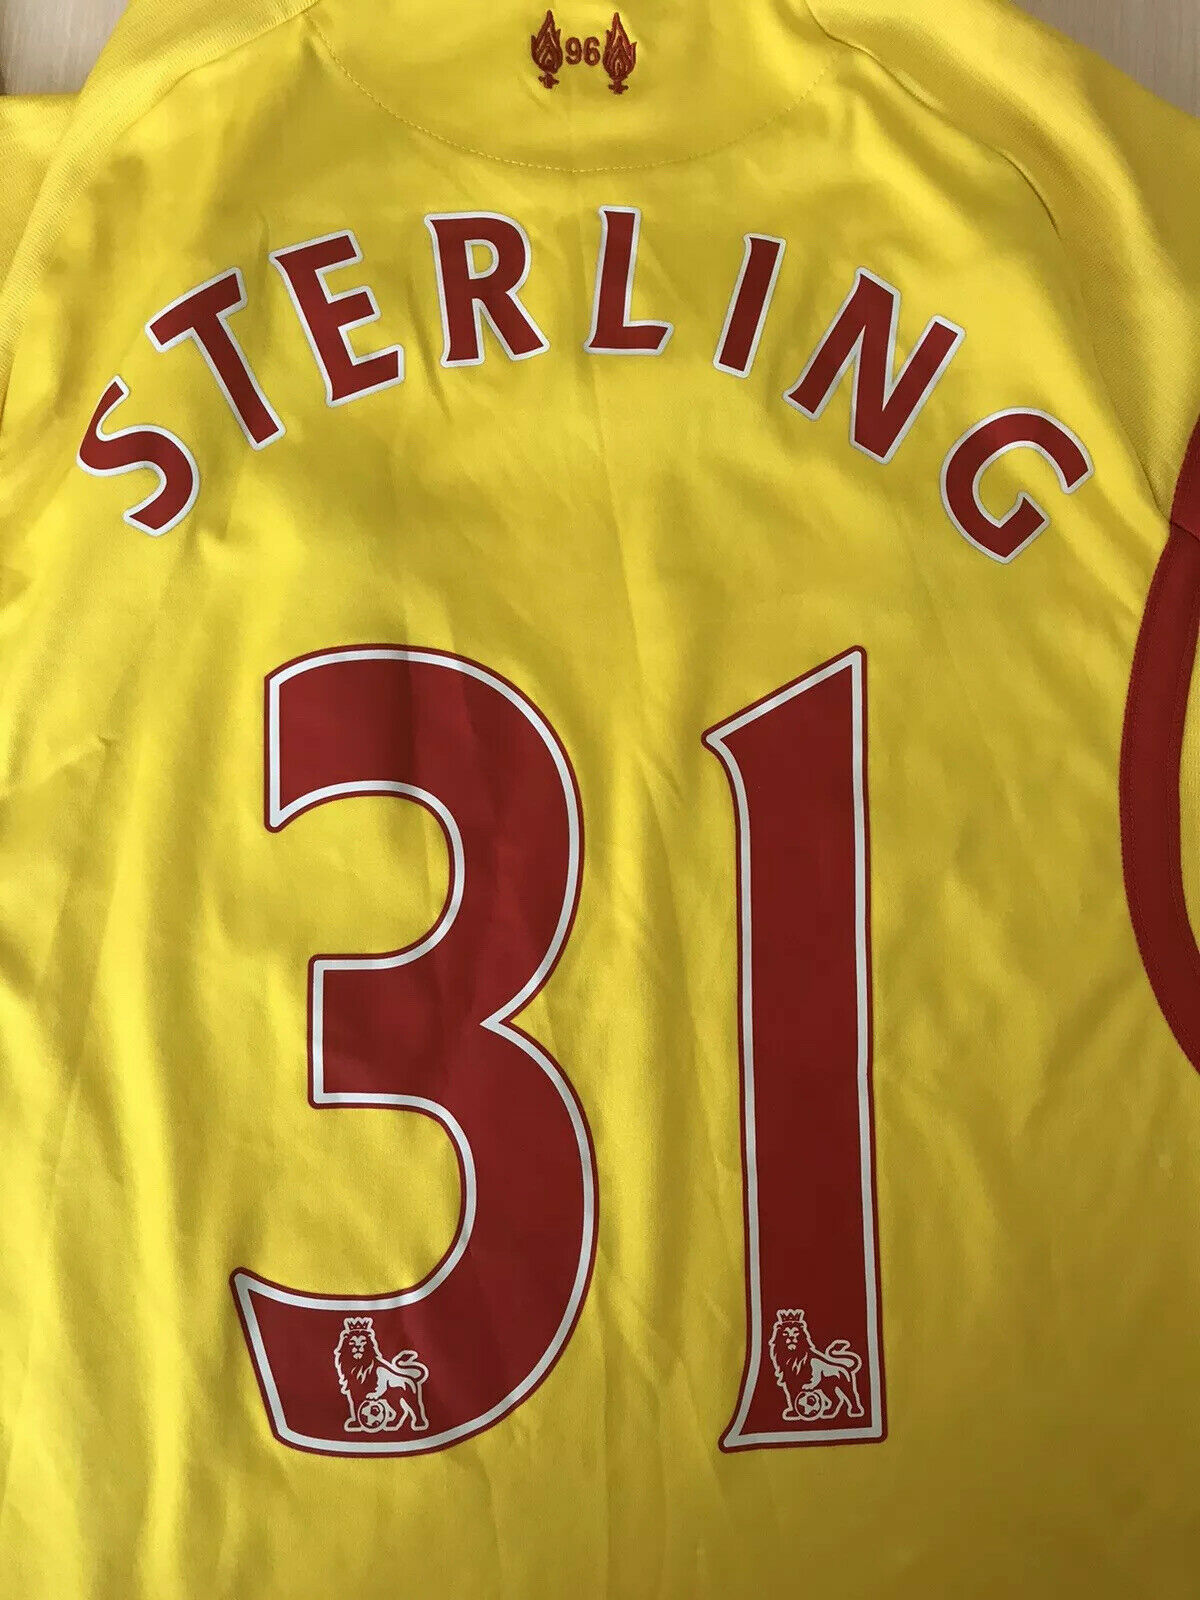 FC Liverpool #31 Sterling 2014/2015 Away Size S Warrior jersey